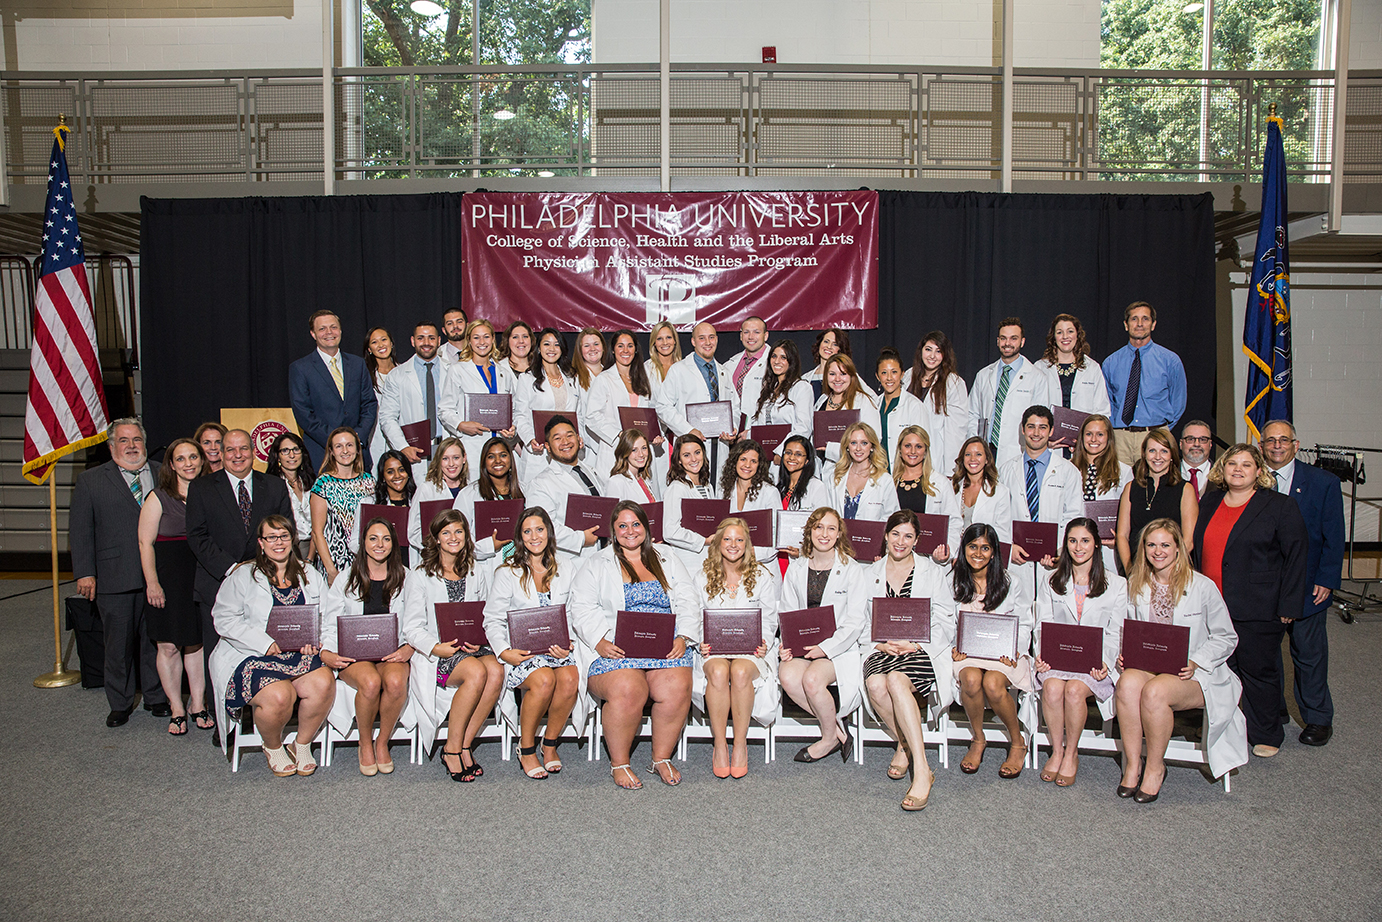 Physician Assistant Studies Class of 2015 and faculty members.